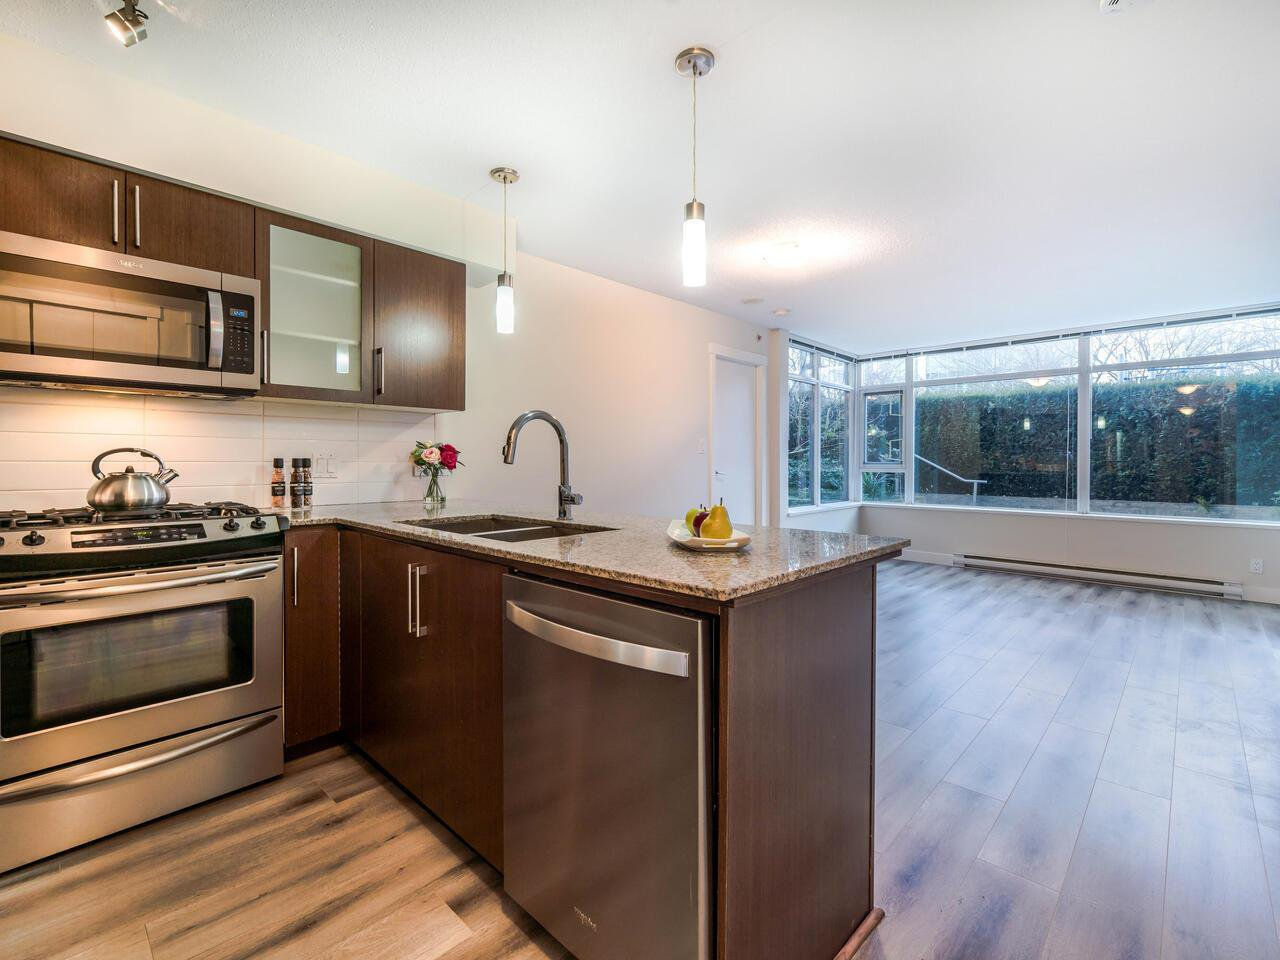 """Main Photo: 503 8068 WESTMINSTER Highway in Richmond: Brighouse Condo for sale in """"Camino"""" : MLS®# R2528015"""